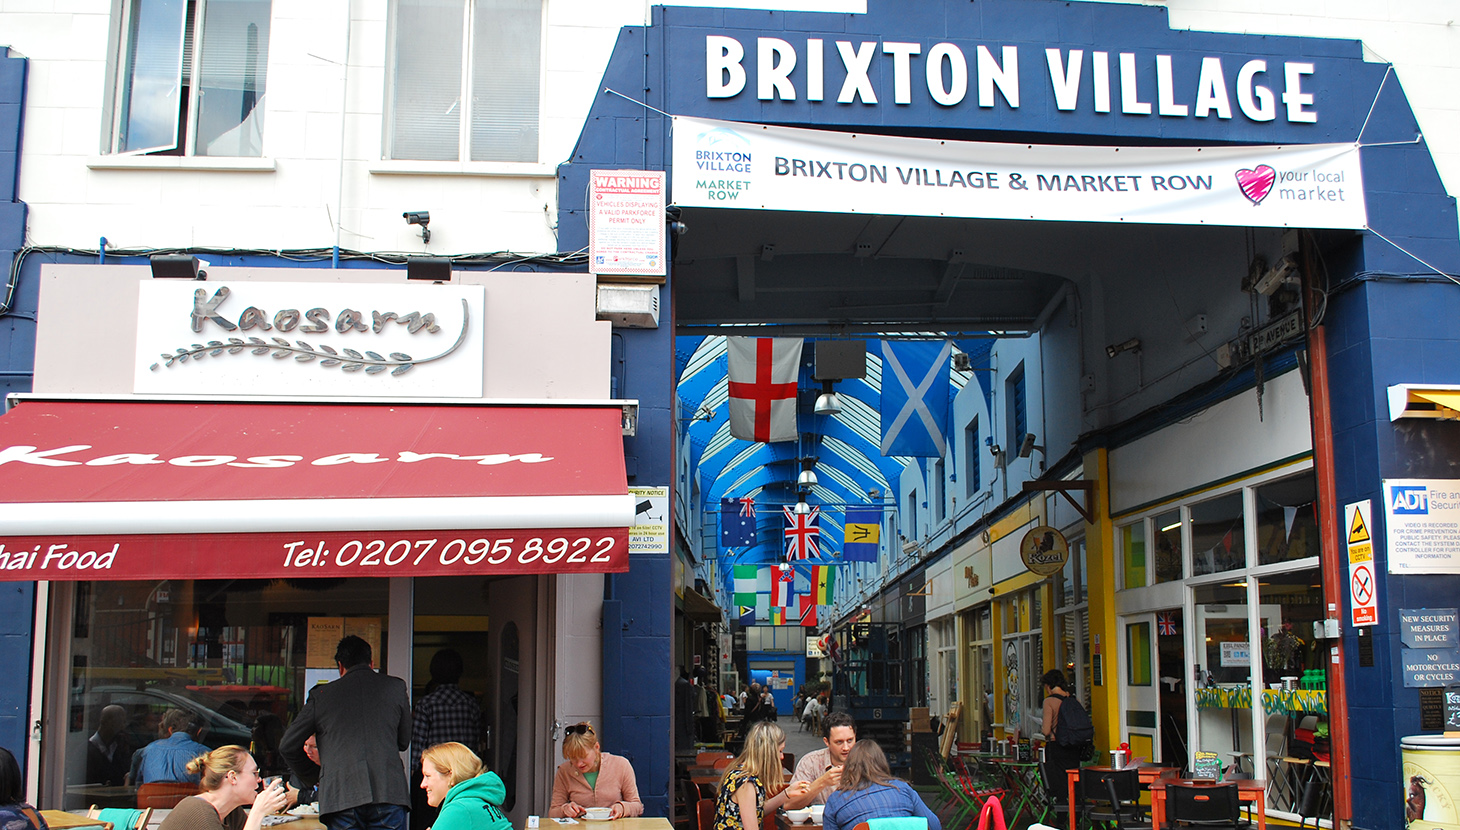 The new wave of delis and restaurants in Brixton Village